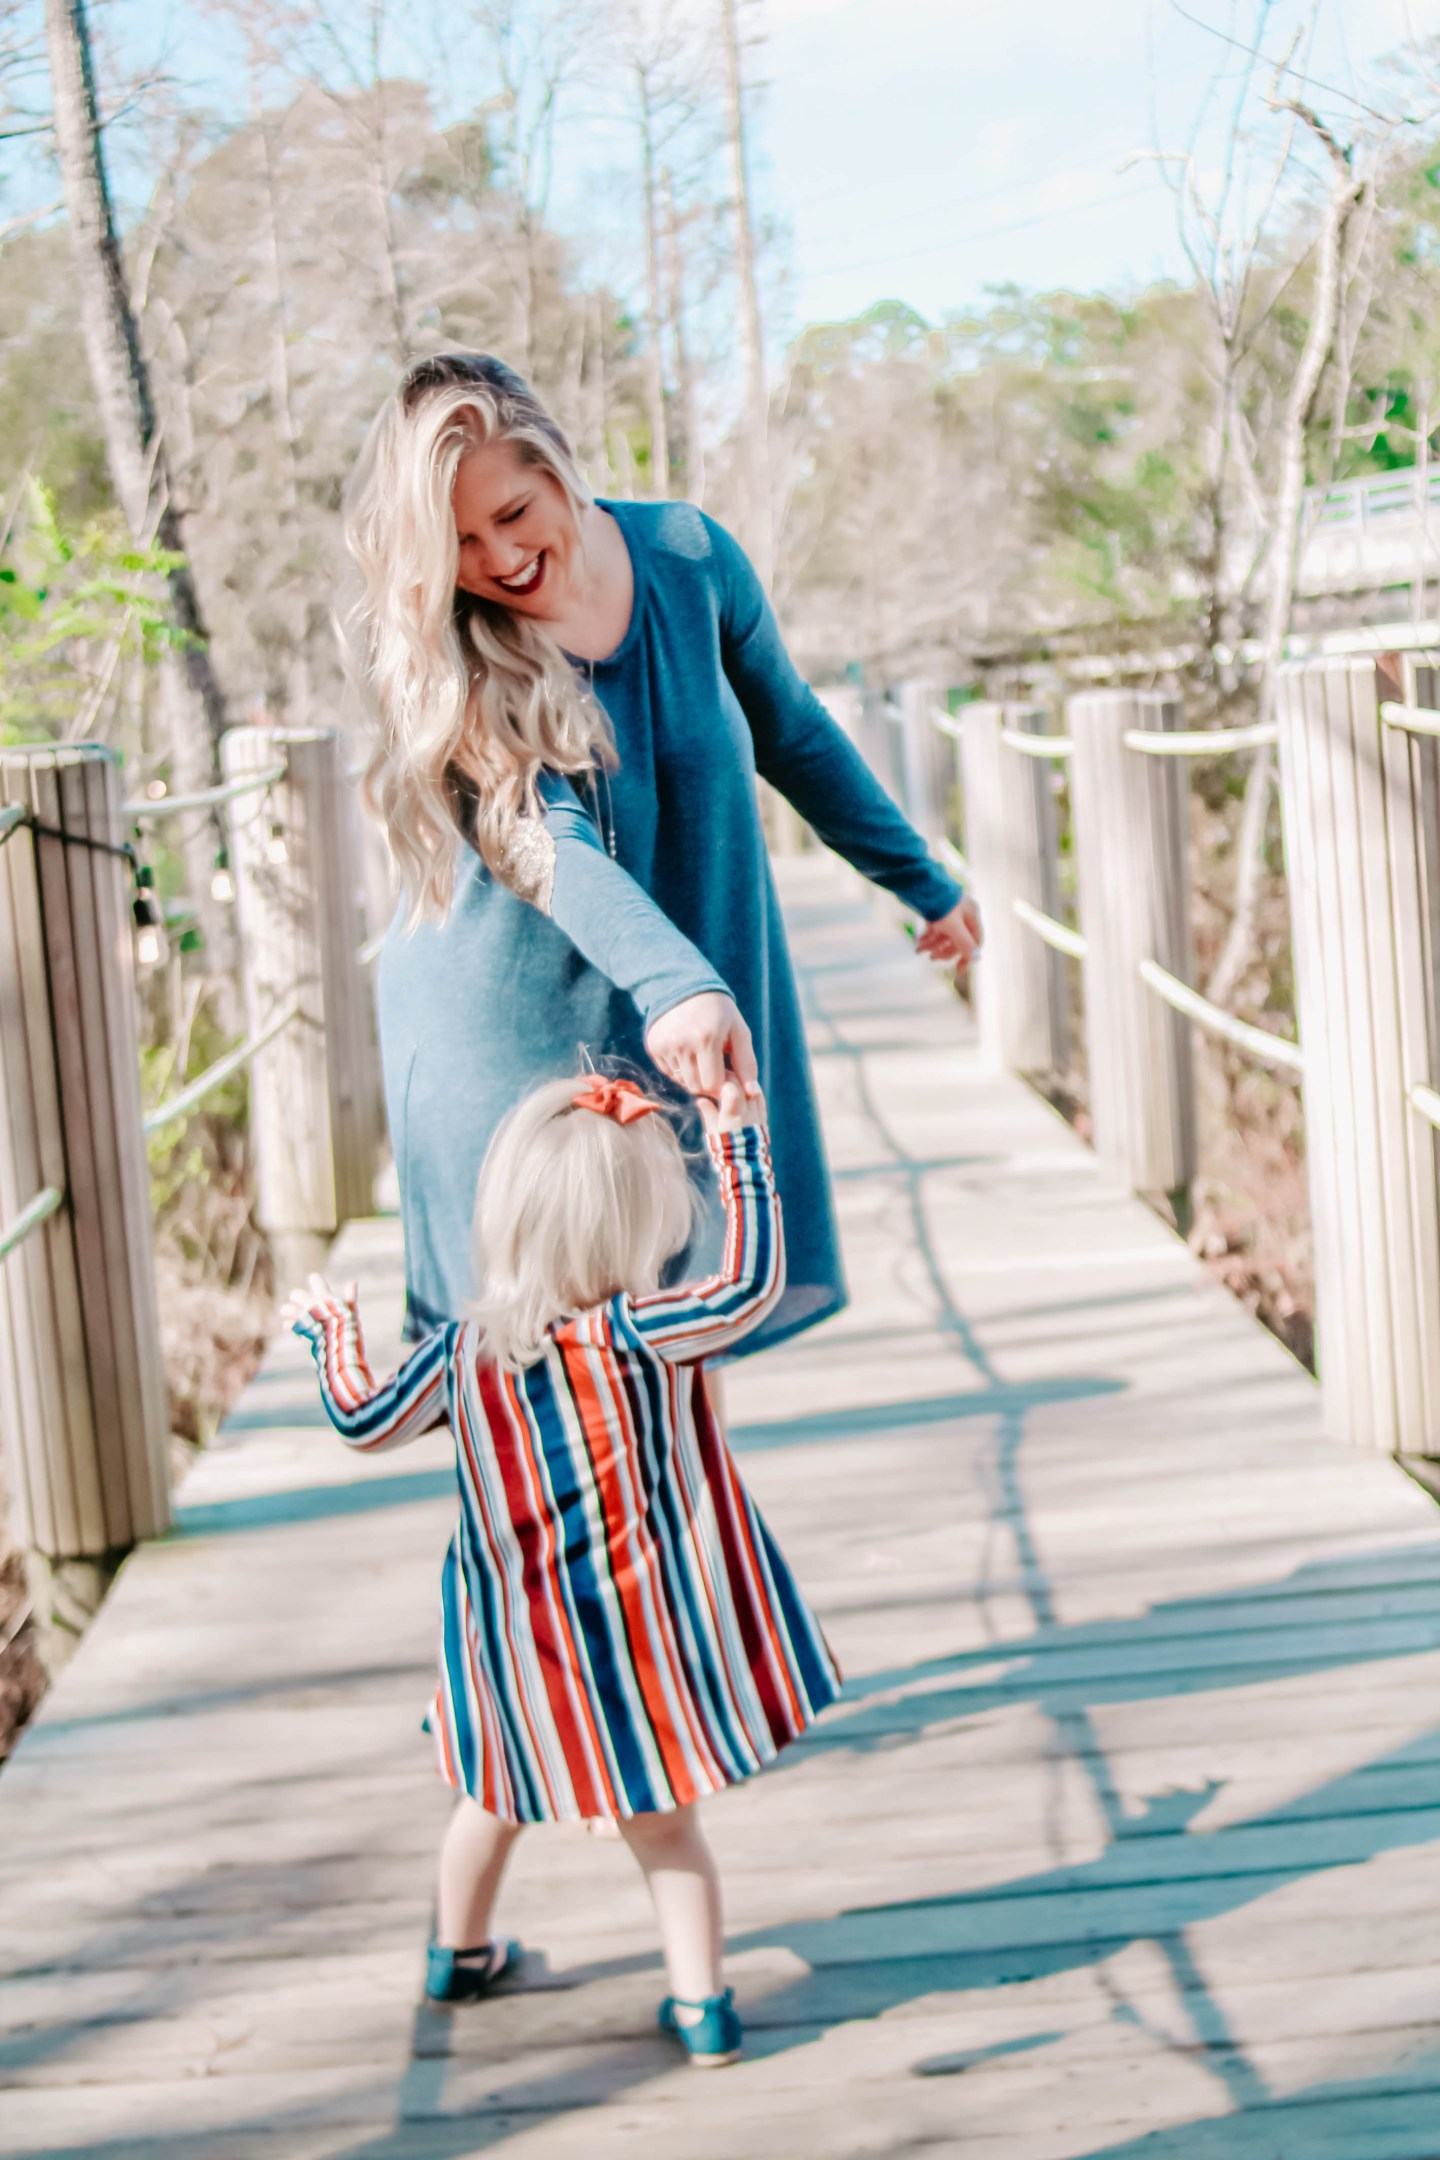 Mom + Me Dresses | What We Wore for Daisy's Birthday!